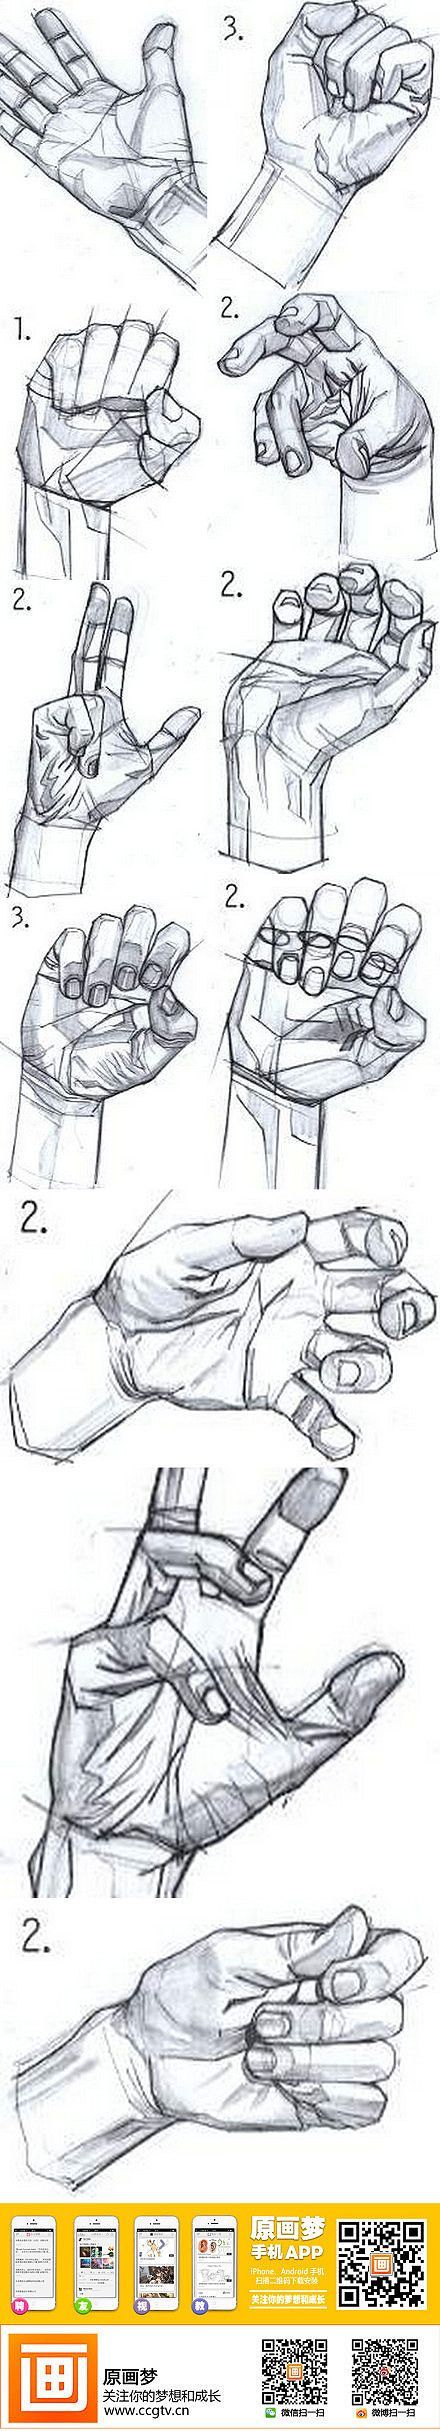 How to draw/sketch the human hand in realistic detail.